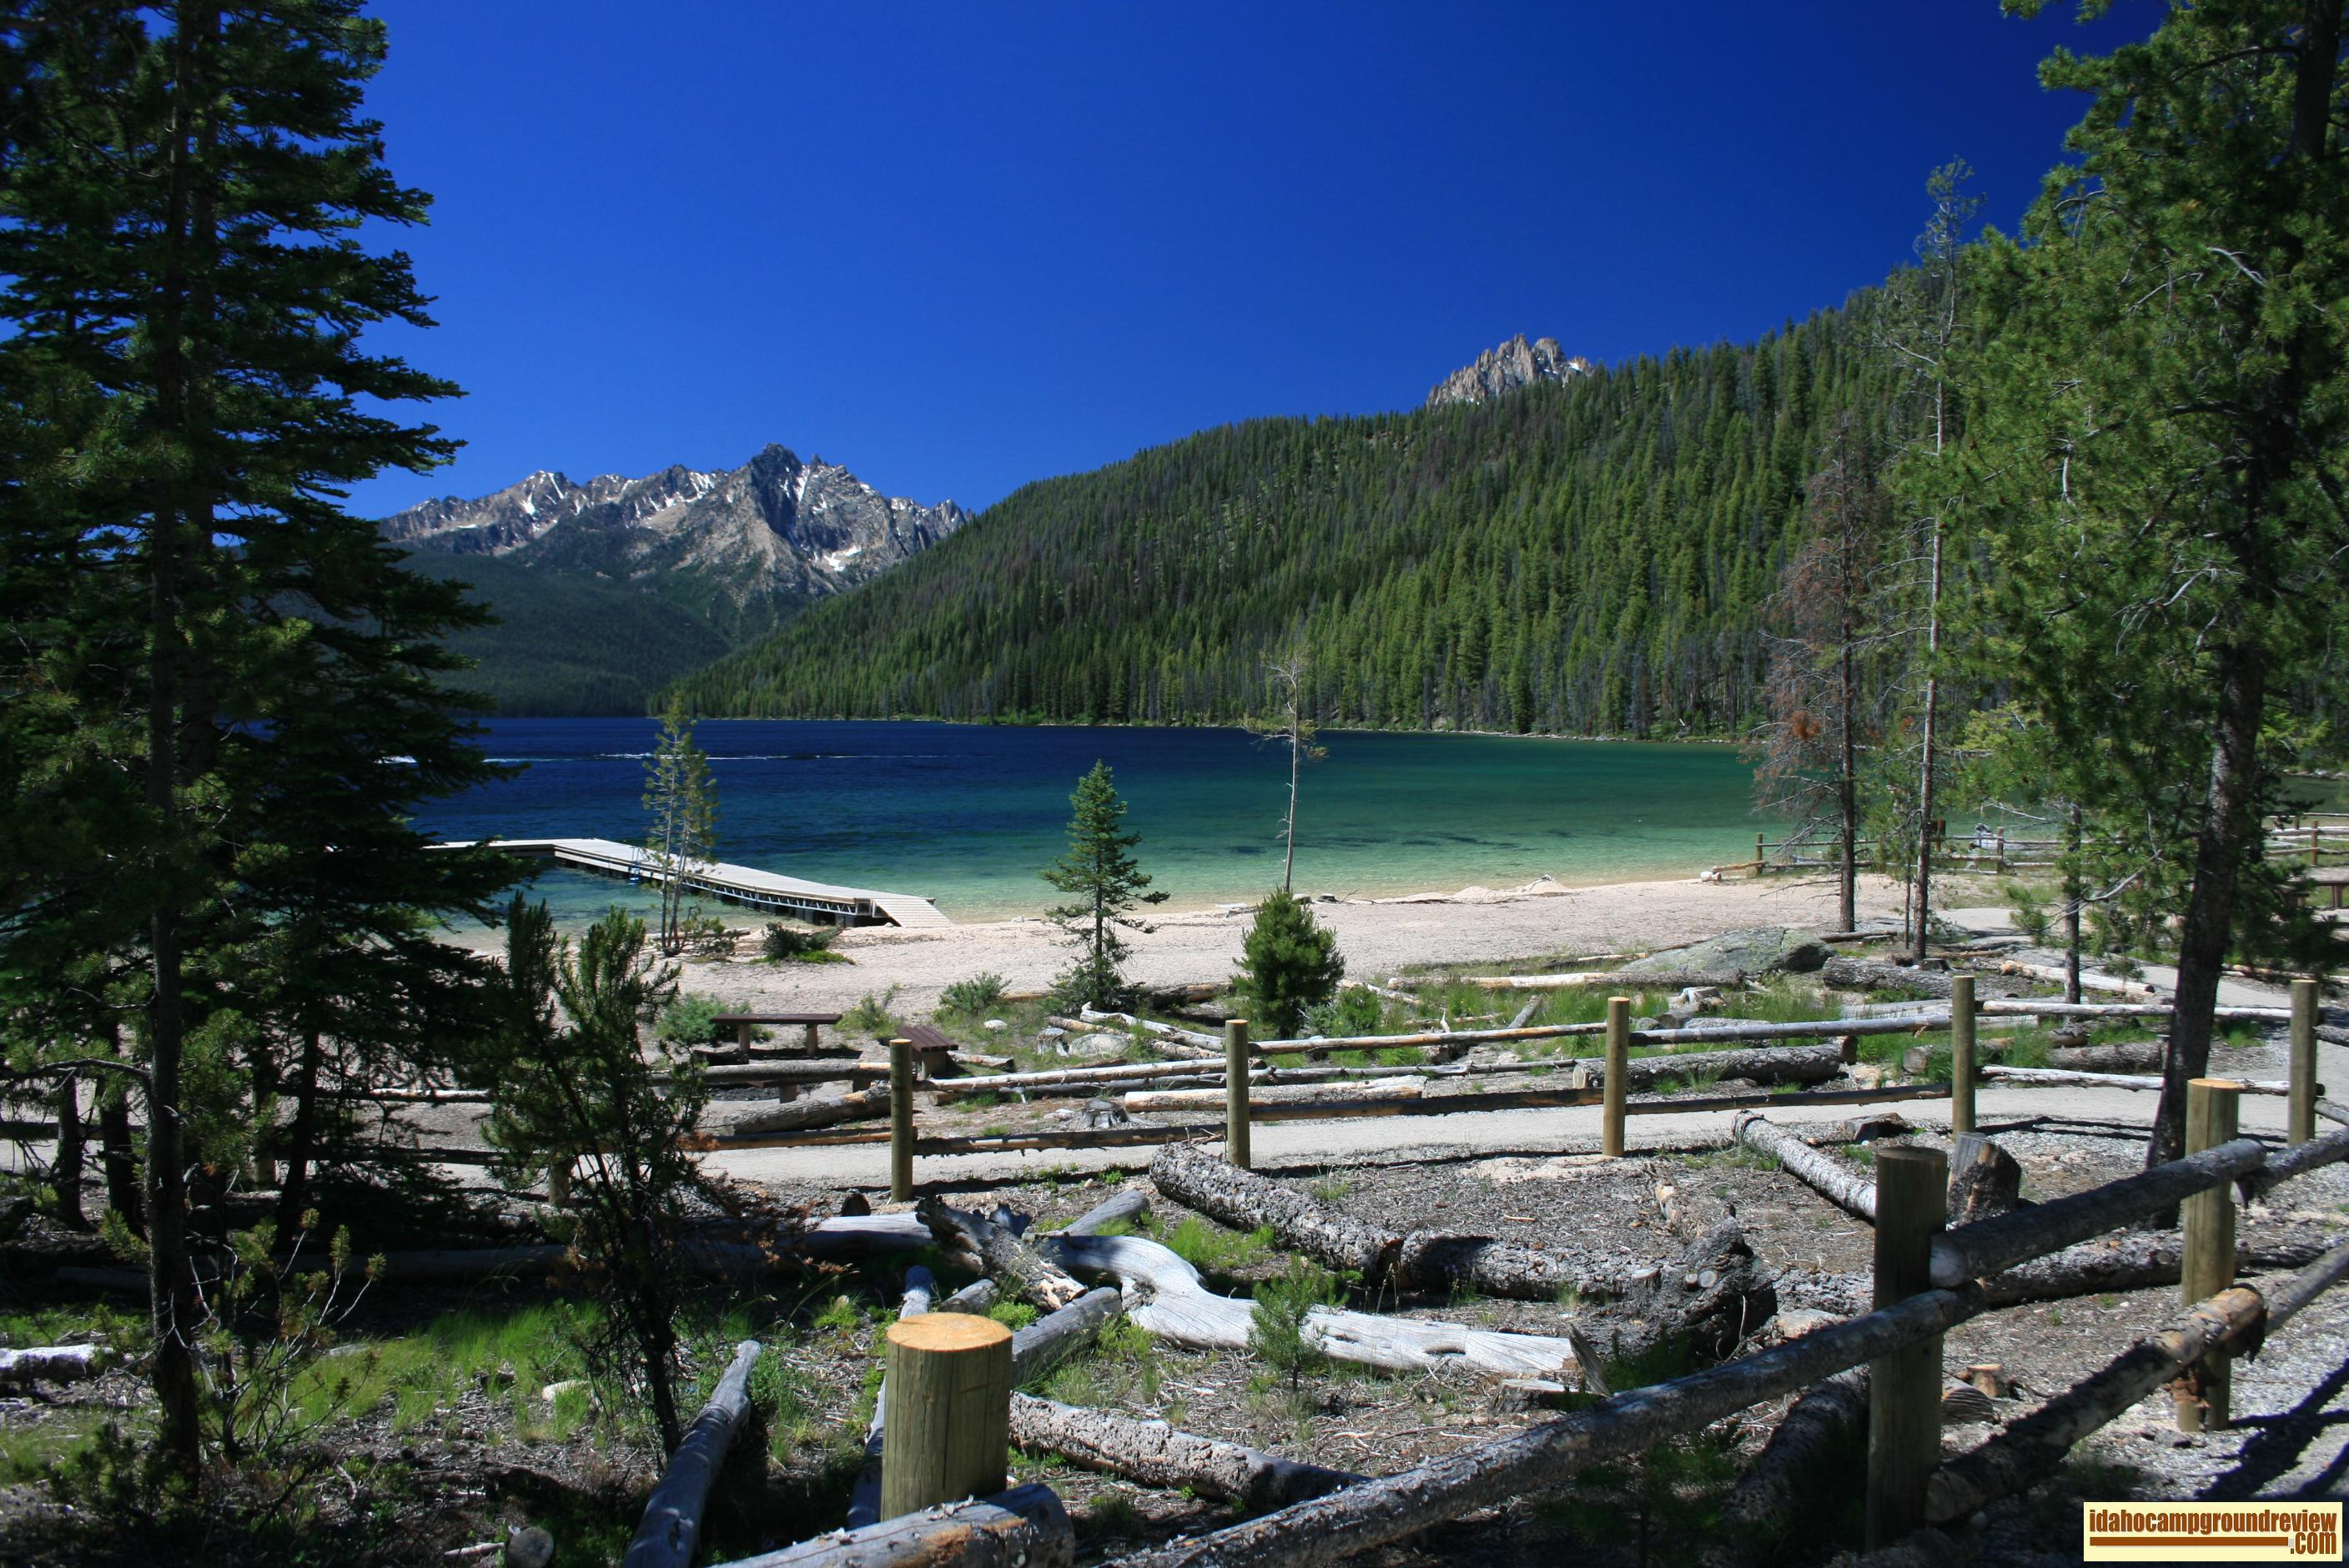 ... Point Campground and Day Use area on Redfish Lake ...